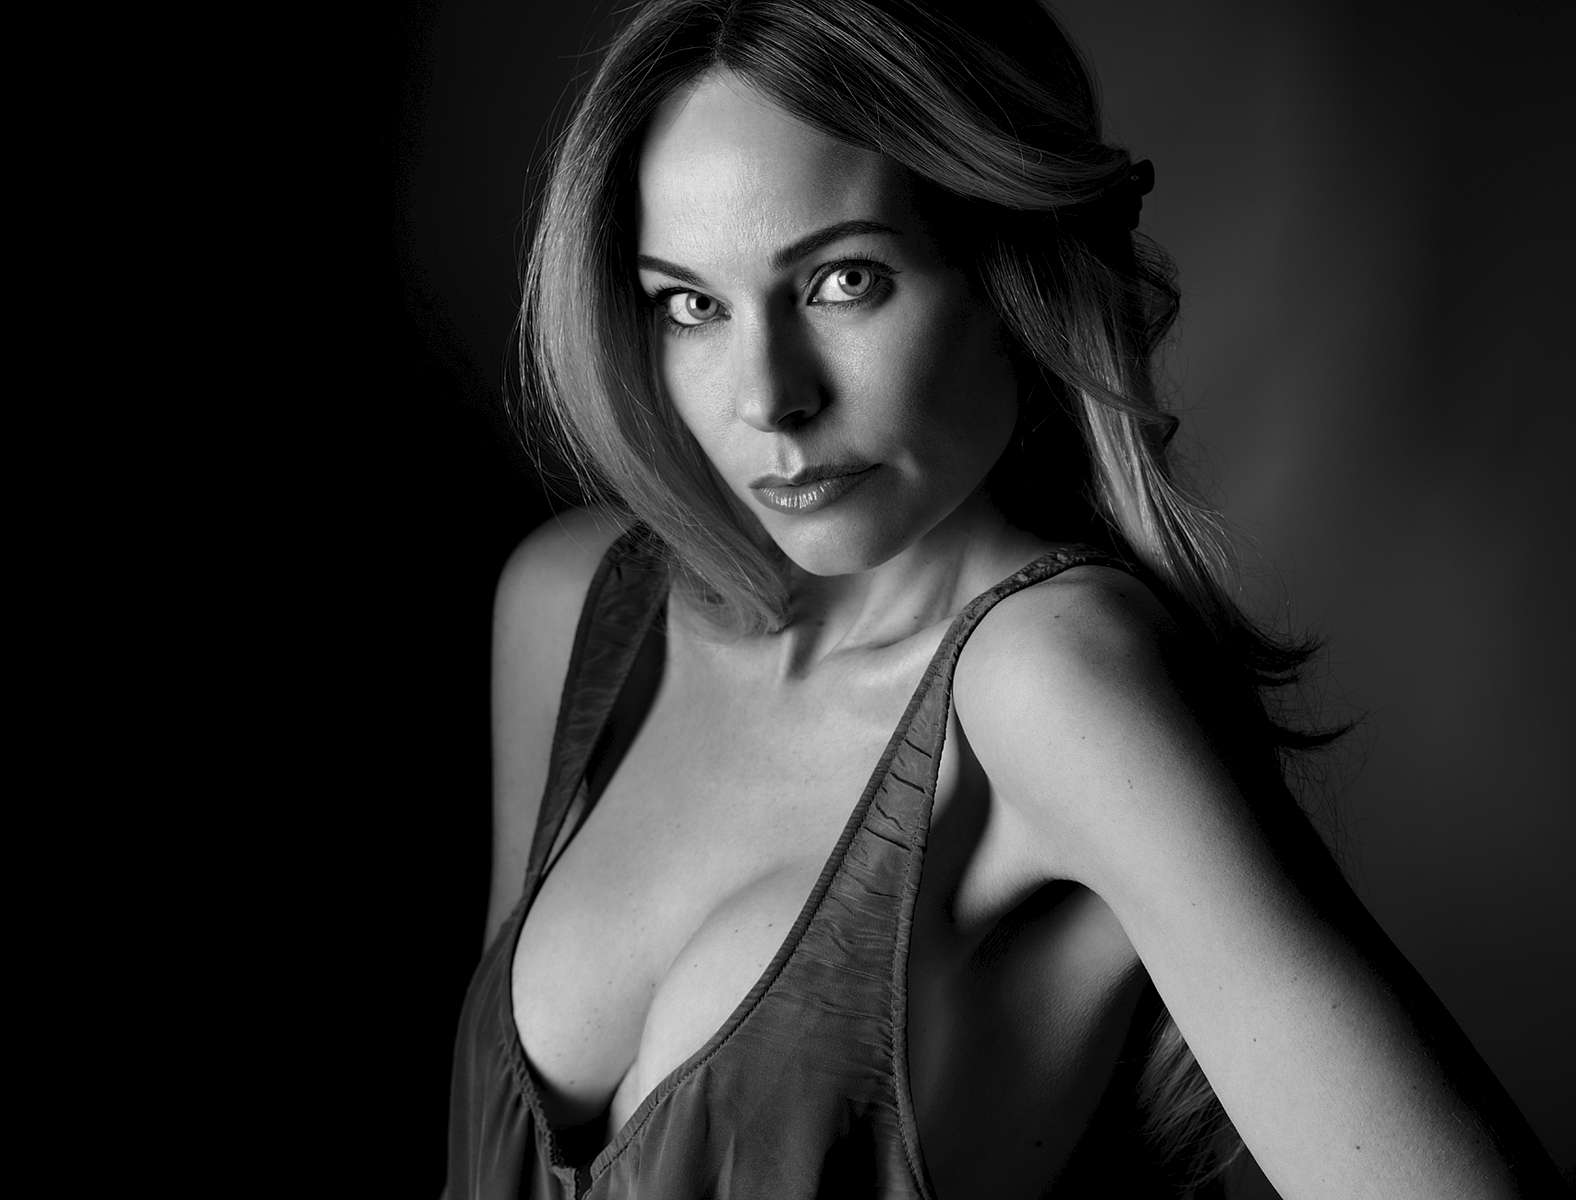 Model: Ingvill posing towards the camera in this black and white chest height portrait